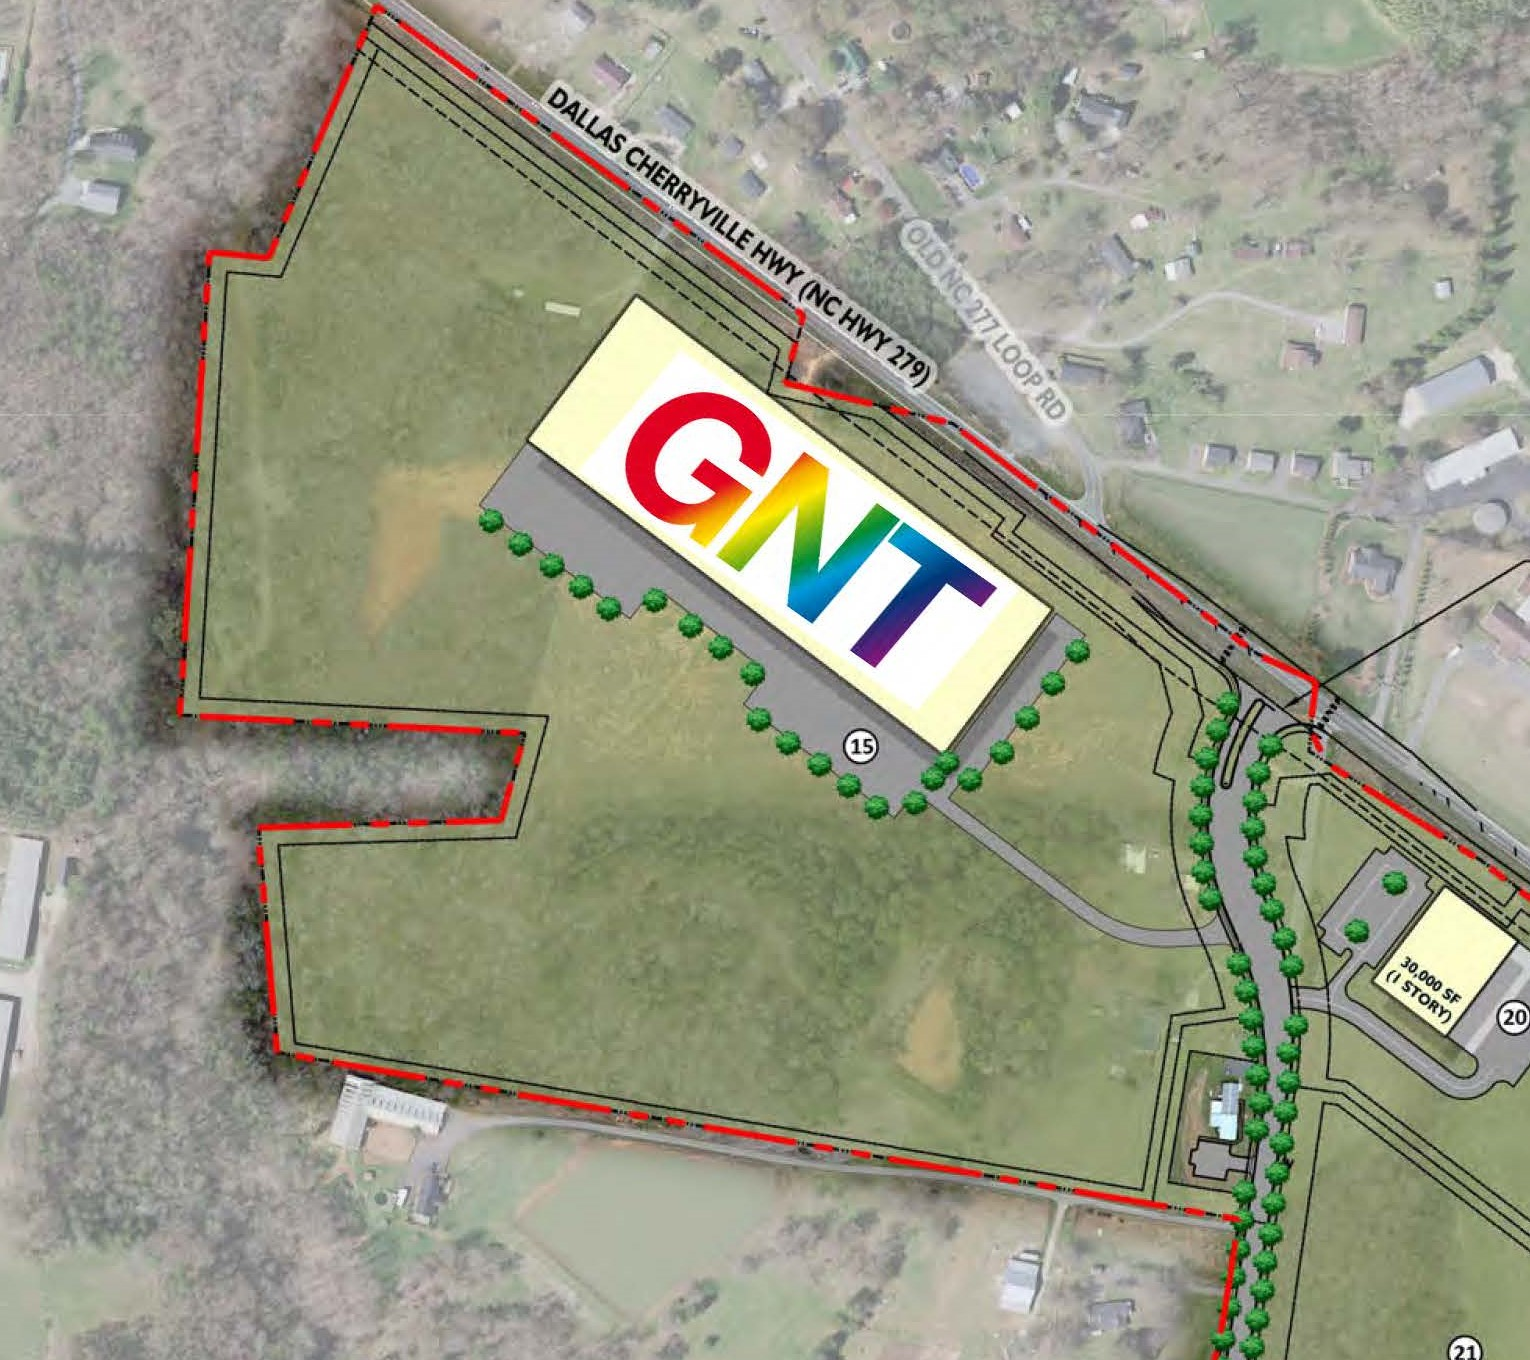 First US Facility to be Built in Apple Creek Corp. Park: GNT USA, Inc.